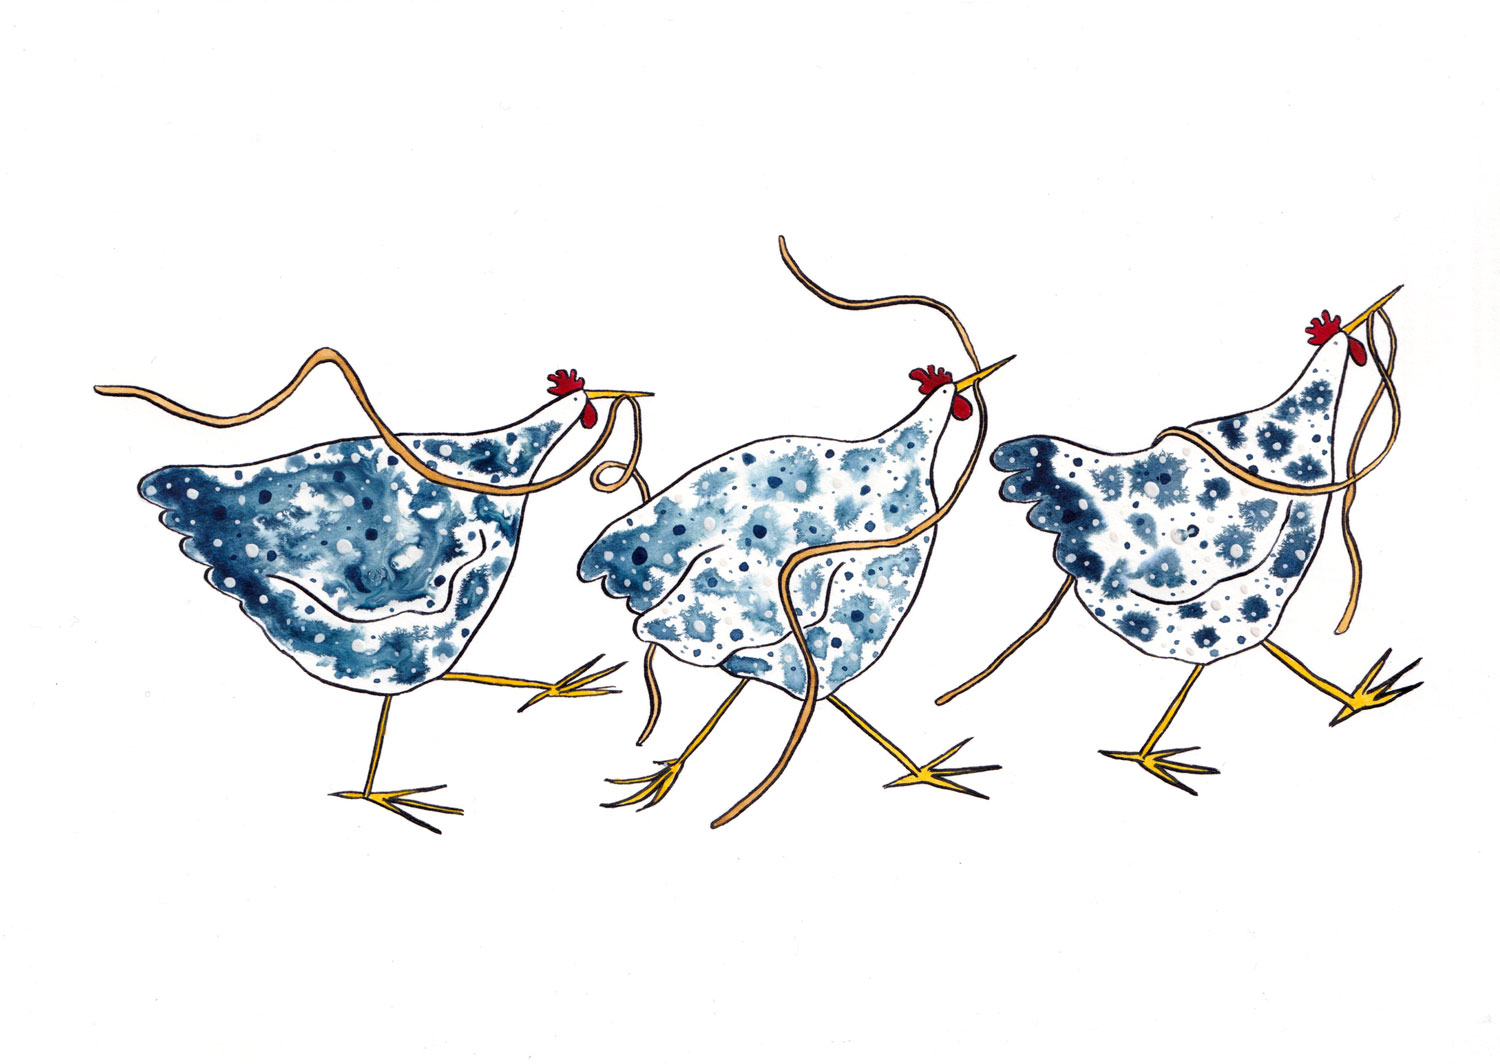 Painting of three blue and while hens eating spaghetti